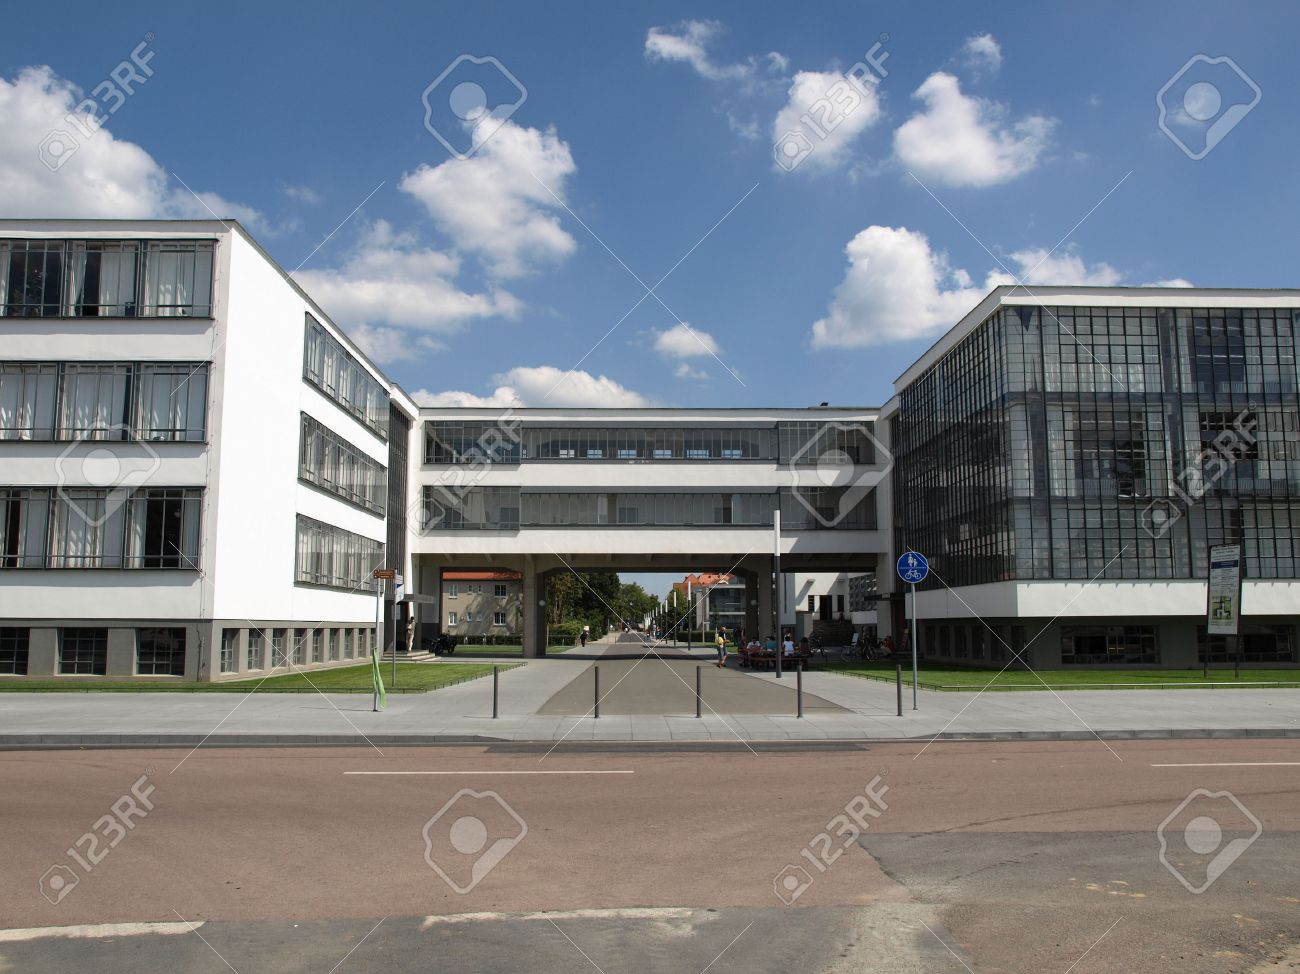 Modern Architecture Germany modern architecture in dessau, germany (south of berlin) stock